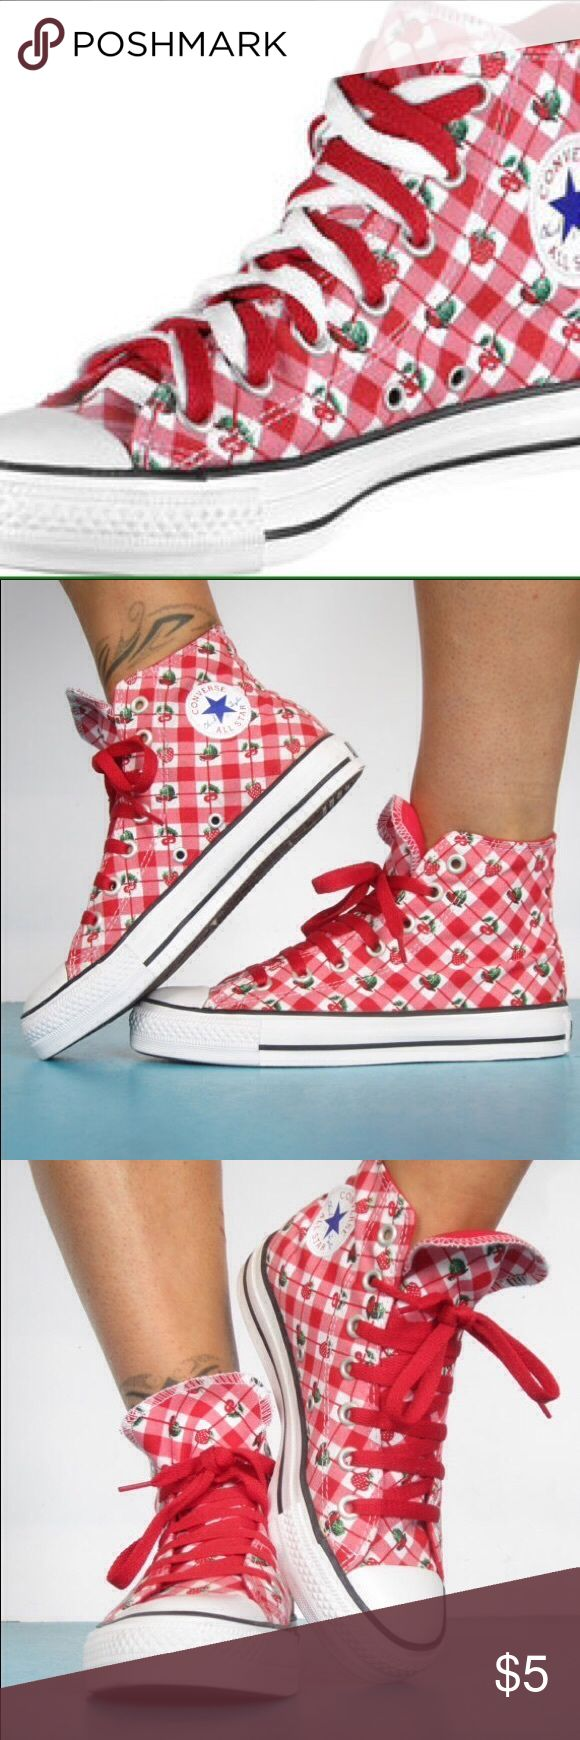 ISO : Converse Cherry Strawberry High Tops IN SEARCH OF ; DO NOT BUY !!!!!! i am looking for converse chuck taylor high top sneakers with a red & pink plaid / gingham print embellished with cherries & strawberries , as seen on luna lovegood in the harry potter series . i need a size 7 , 7.5 , or 8. i am also interested in any other luna lovegood memorabilia : exacts . thank you for all your help ! Converse Shoes Athletic Shoes